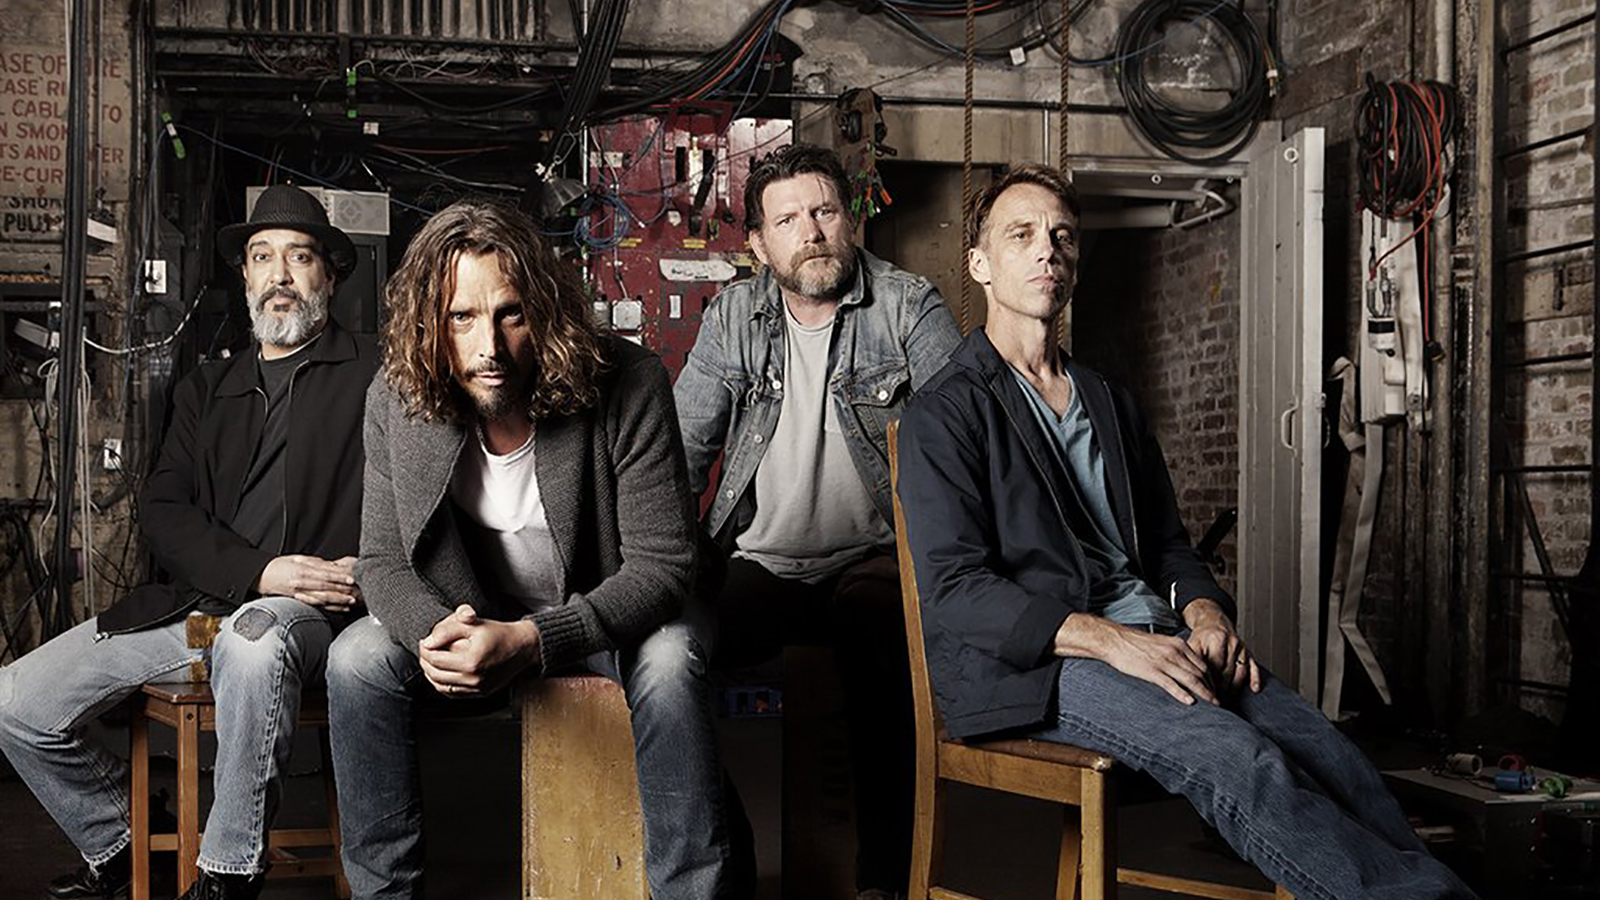 Soundgarden on Breakup, Reunion and First New Album in 15 Years